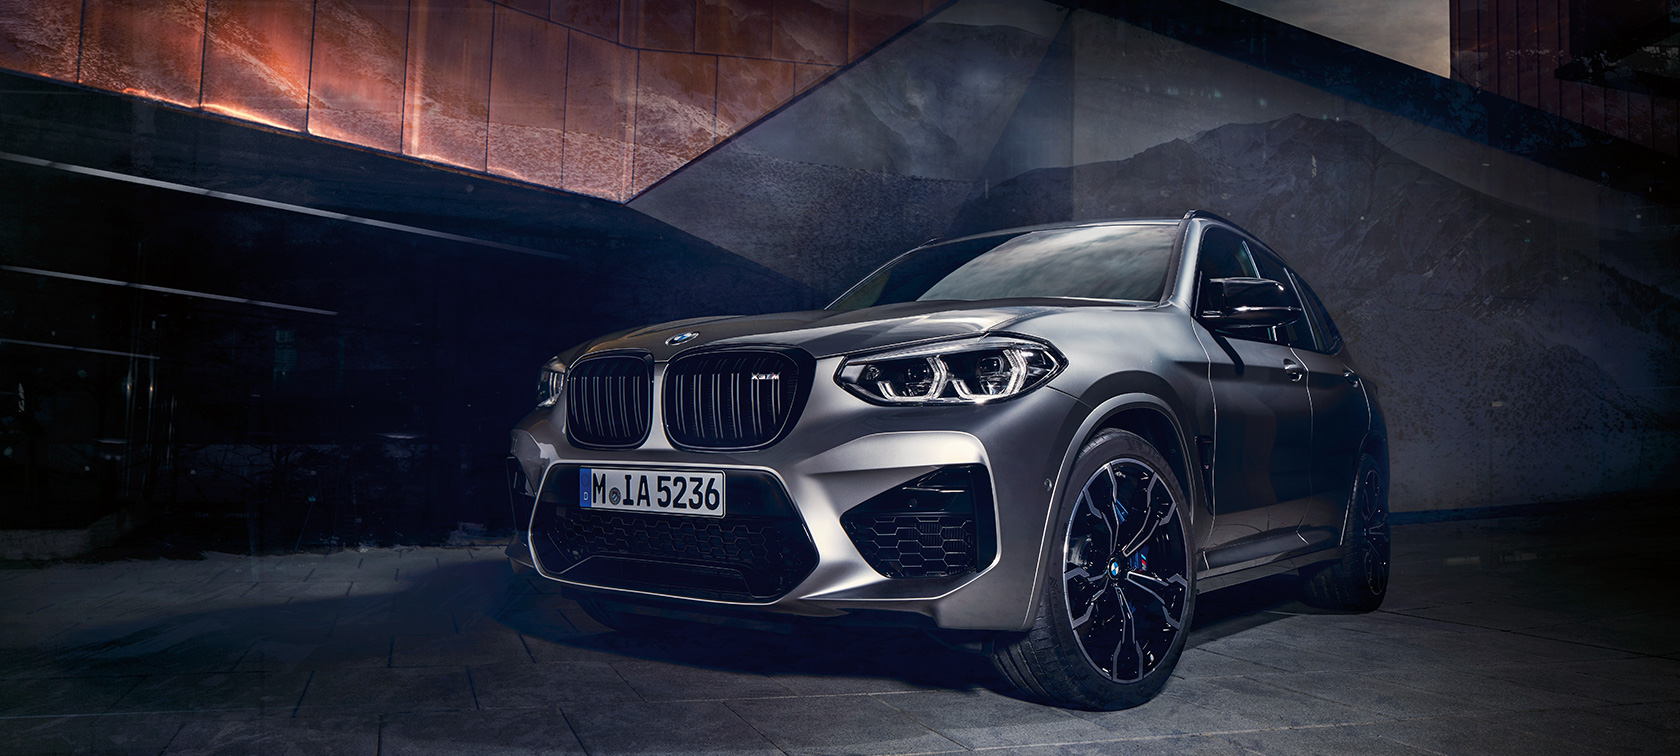 Bmw X3 M Automobiles Bmw X3 M Competition Bmw X3 M40i